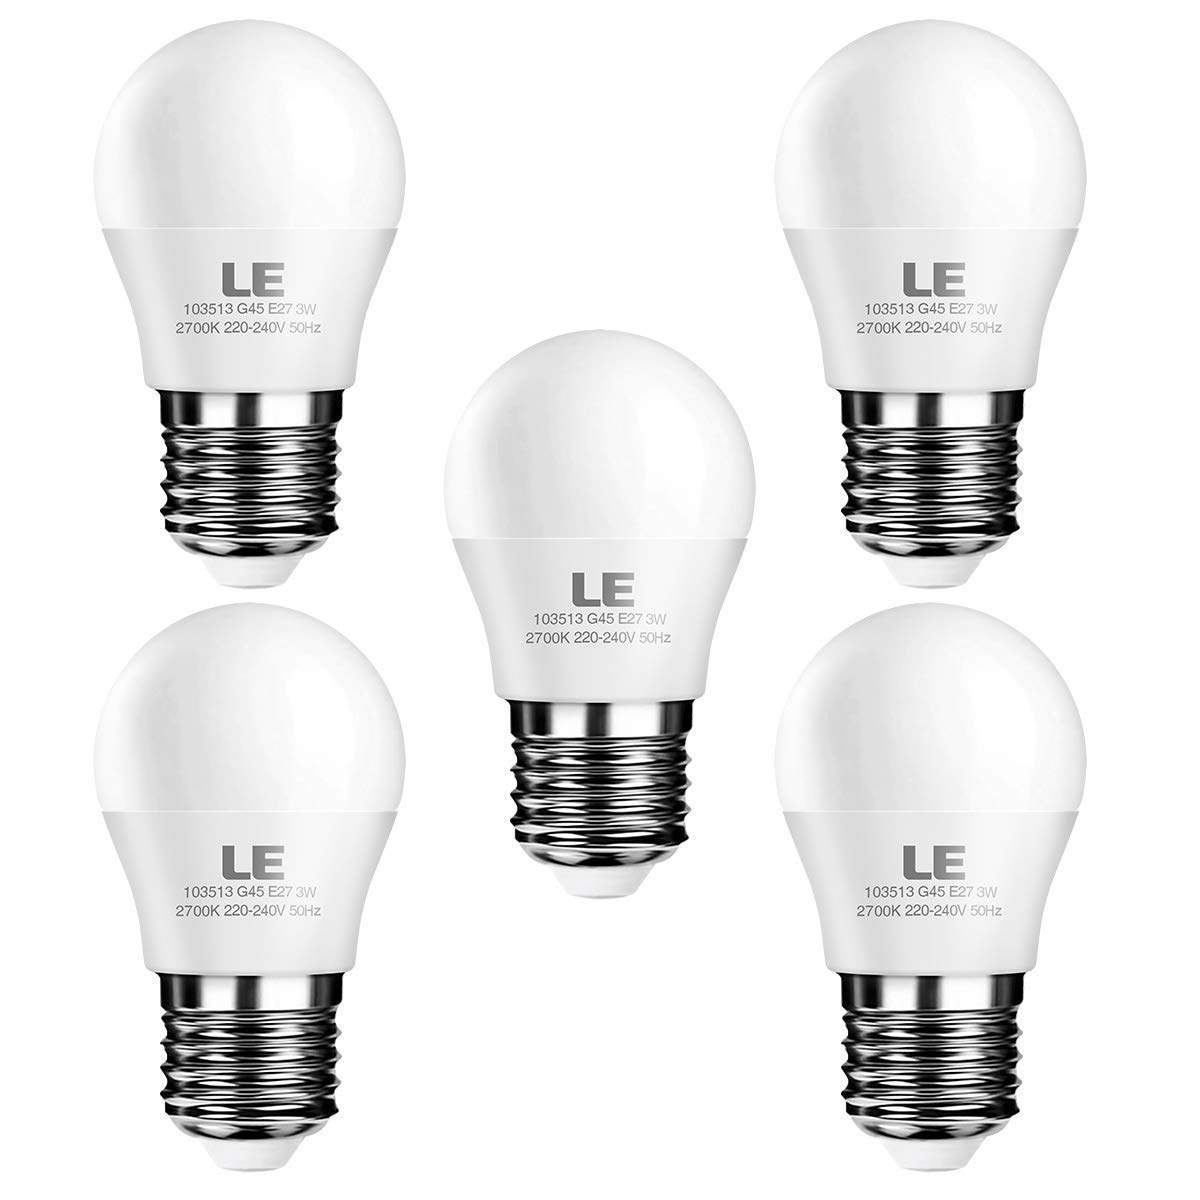 3w240lmAngle Ever Dimmable Diffusion Le Ampoule Incandescente Ampoules À E27 25wNon De 160°Equivalent Lighting Led 435jLqAR